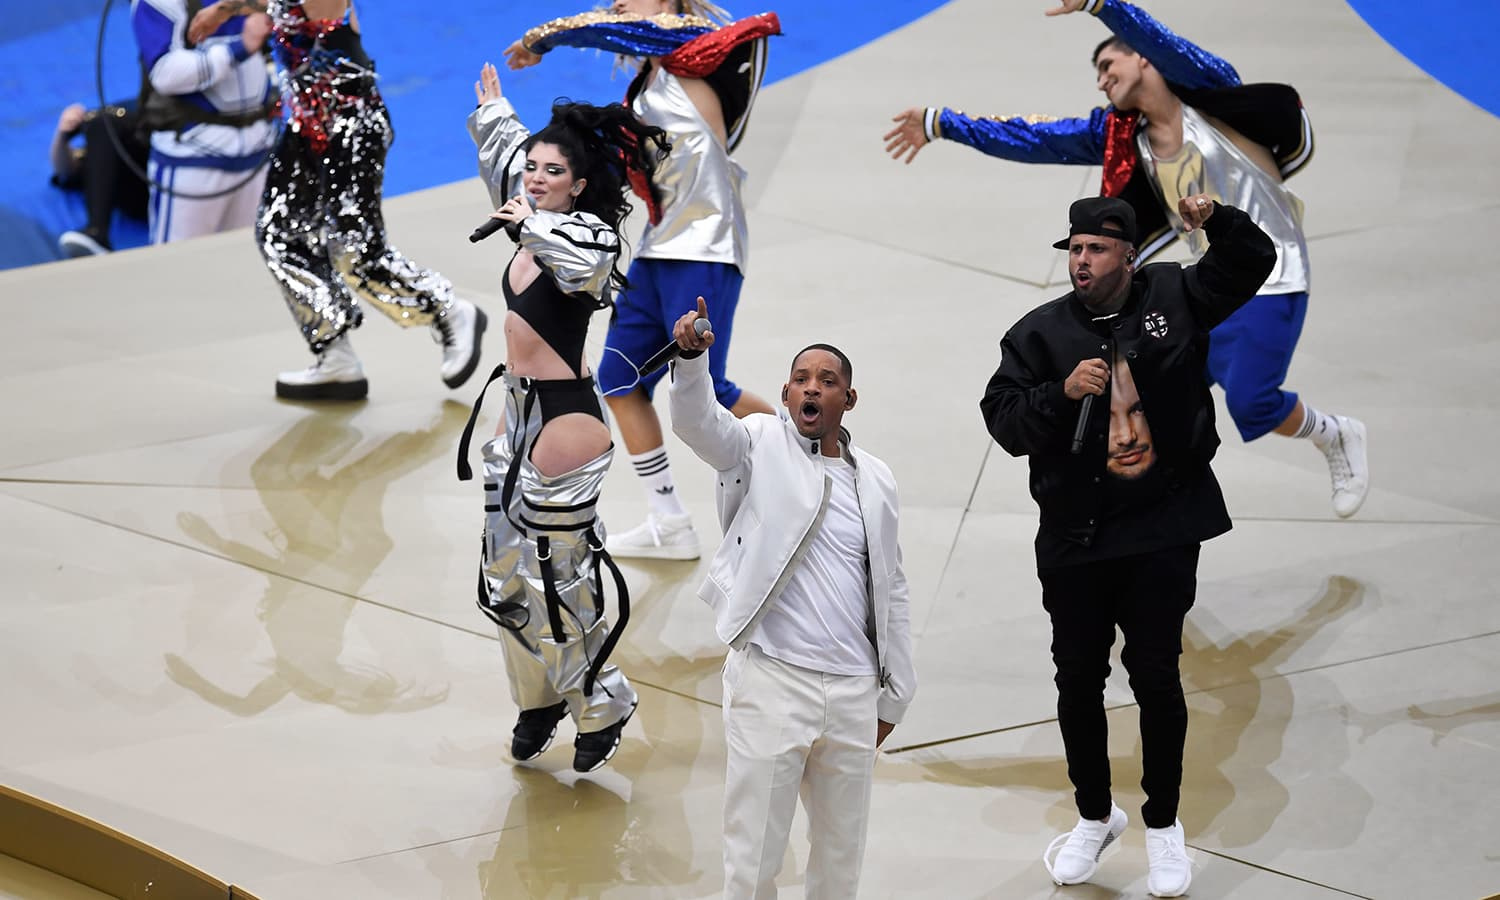 US singer Will Smith (C), Kosovo's singer Era Istrefi (L) and US rapper Nick Rivera Caminero aka Nicky Jam (R) perform during the closing ceremony prior to the Russia 2018 World Cup final match. — AFP